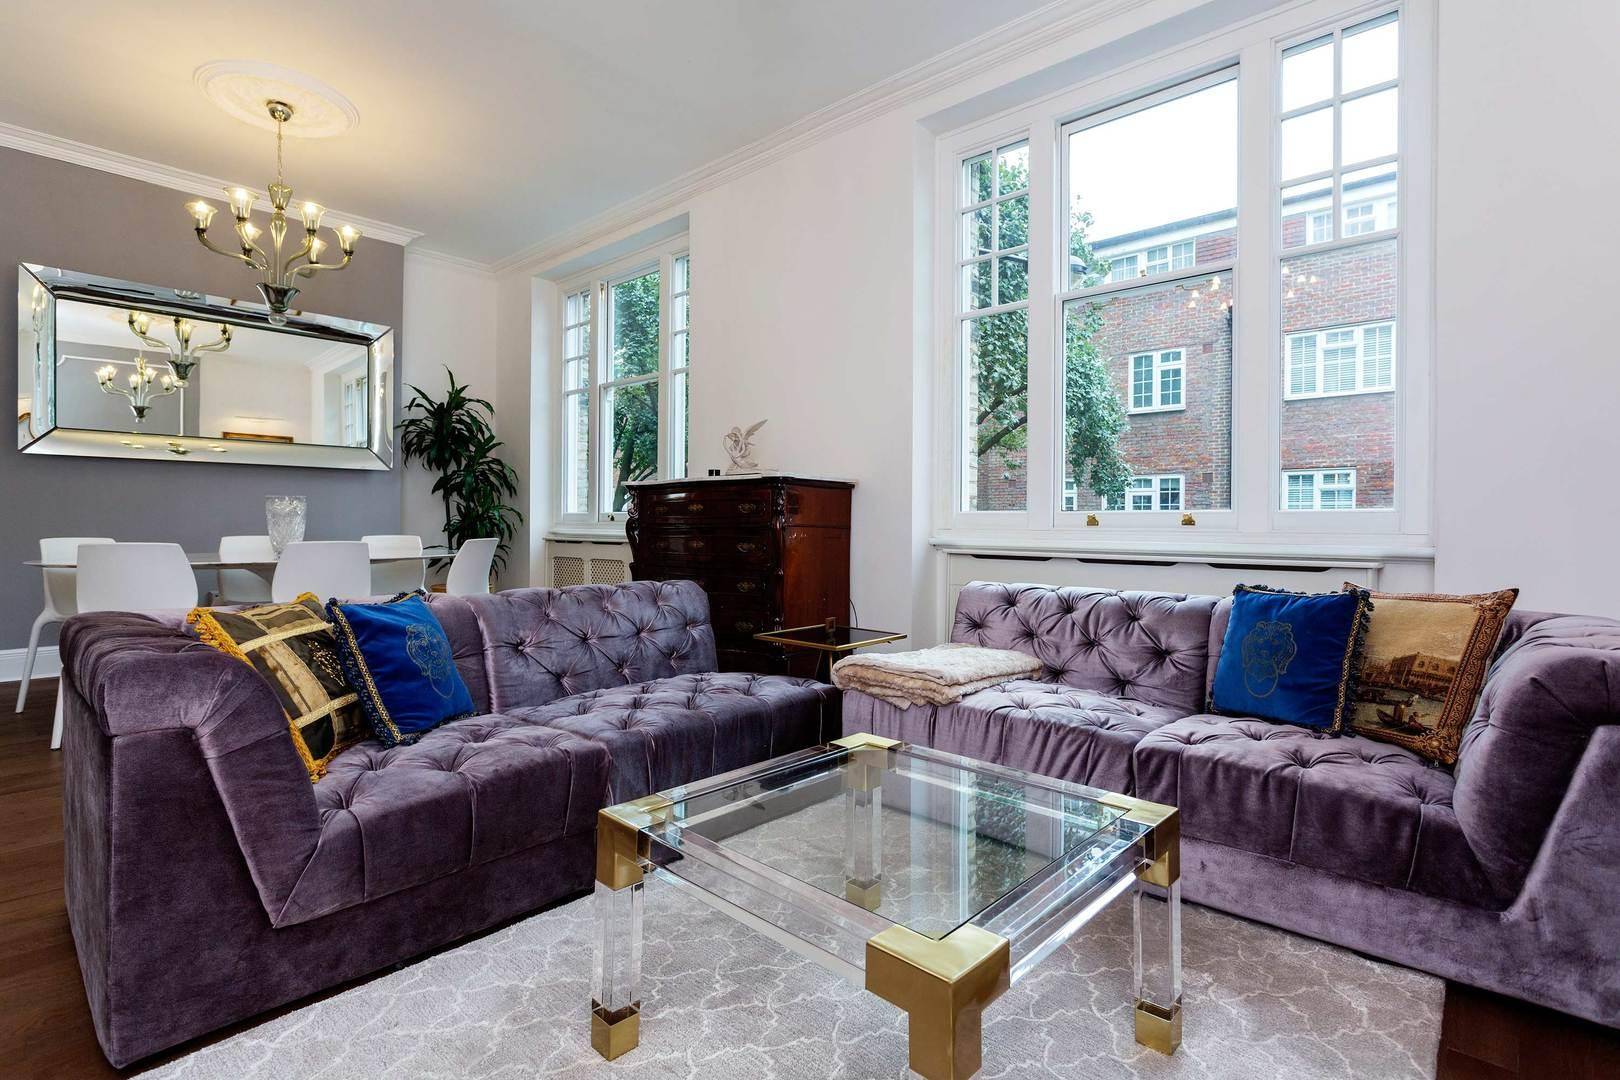 Property Image 1 - Luxurious Regents Park Apartment with Private Balcony